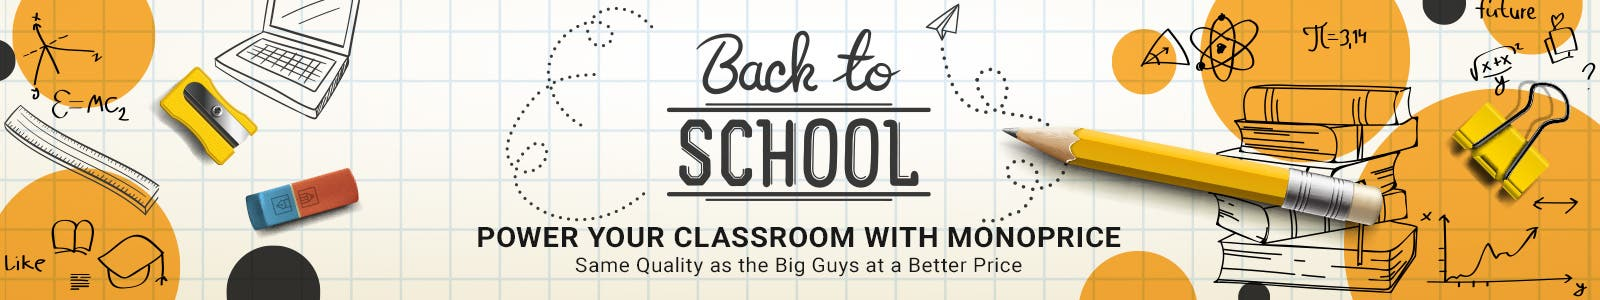 Power Your Classroom with Monoprice Same Quality as the Big Guys at a Better Price Shop Now